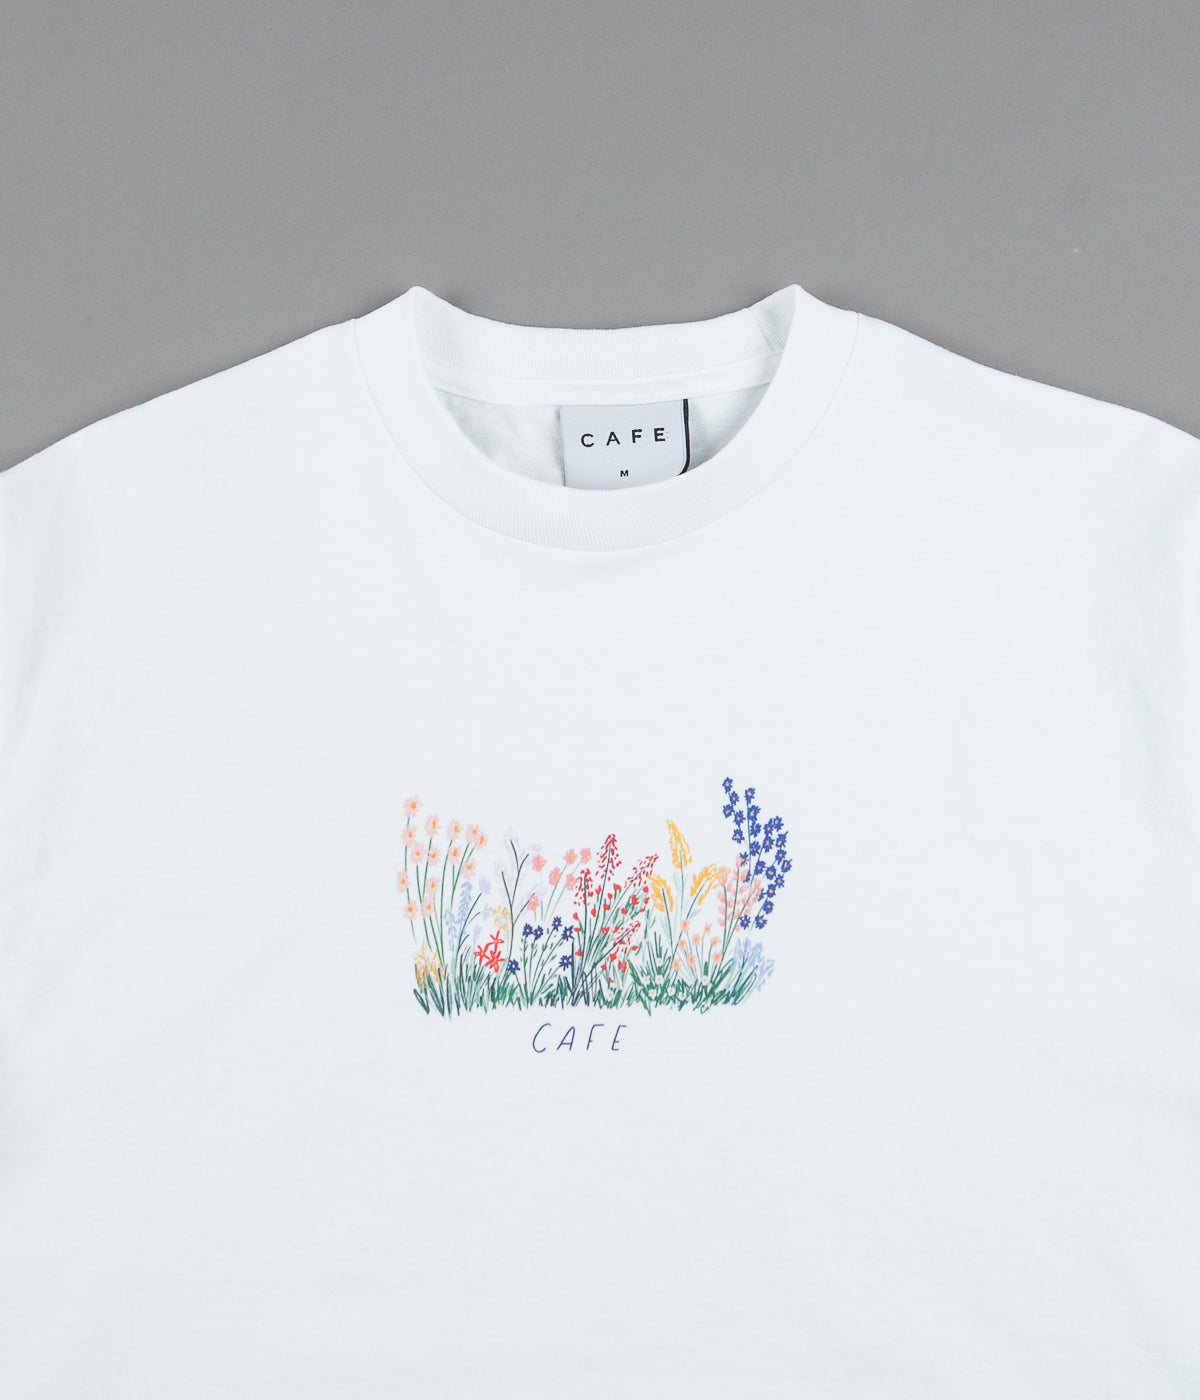 Skateboard Cafe Flower Bed T-Shirt - White